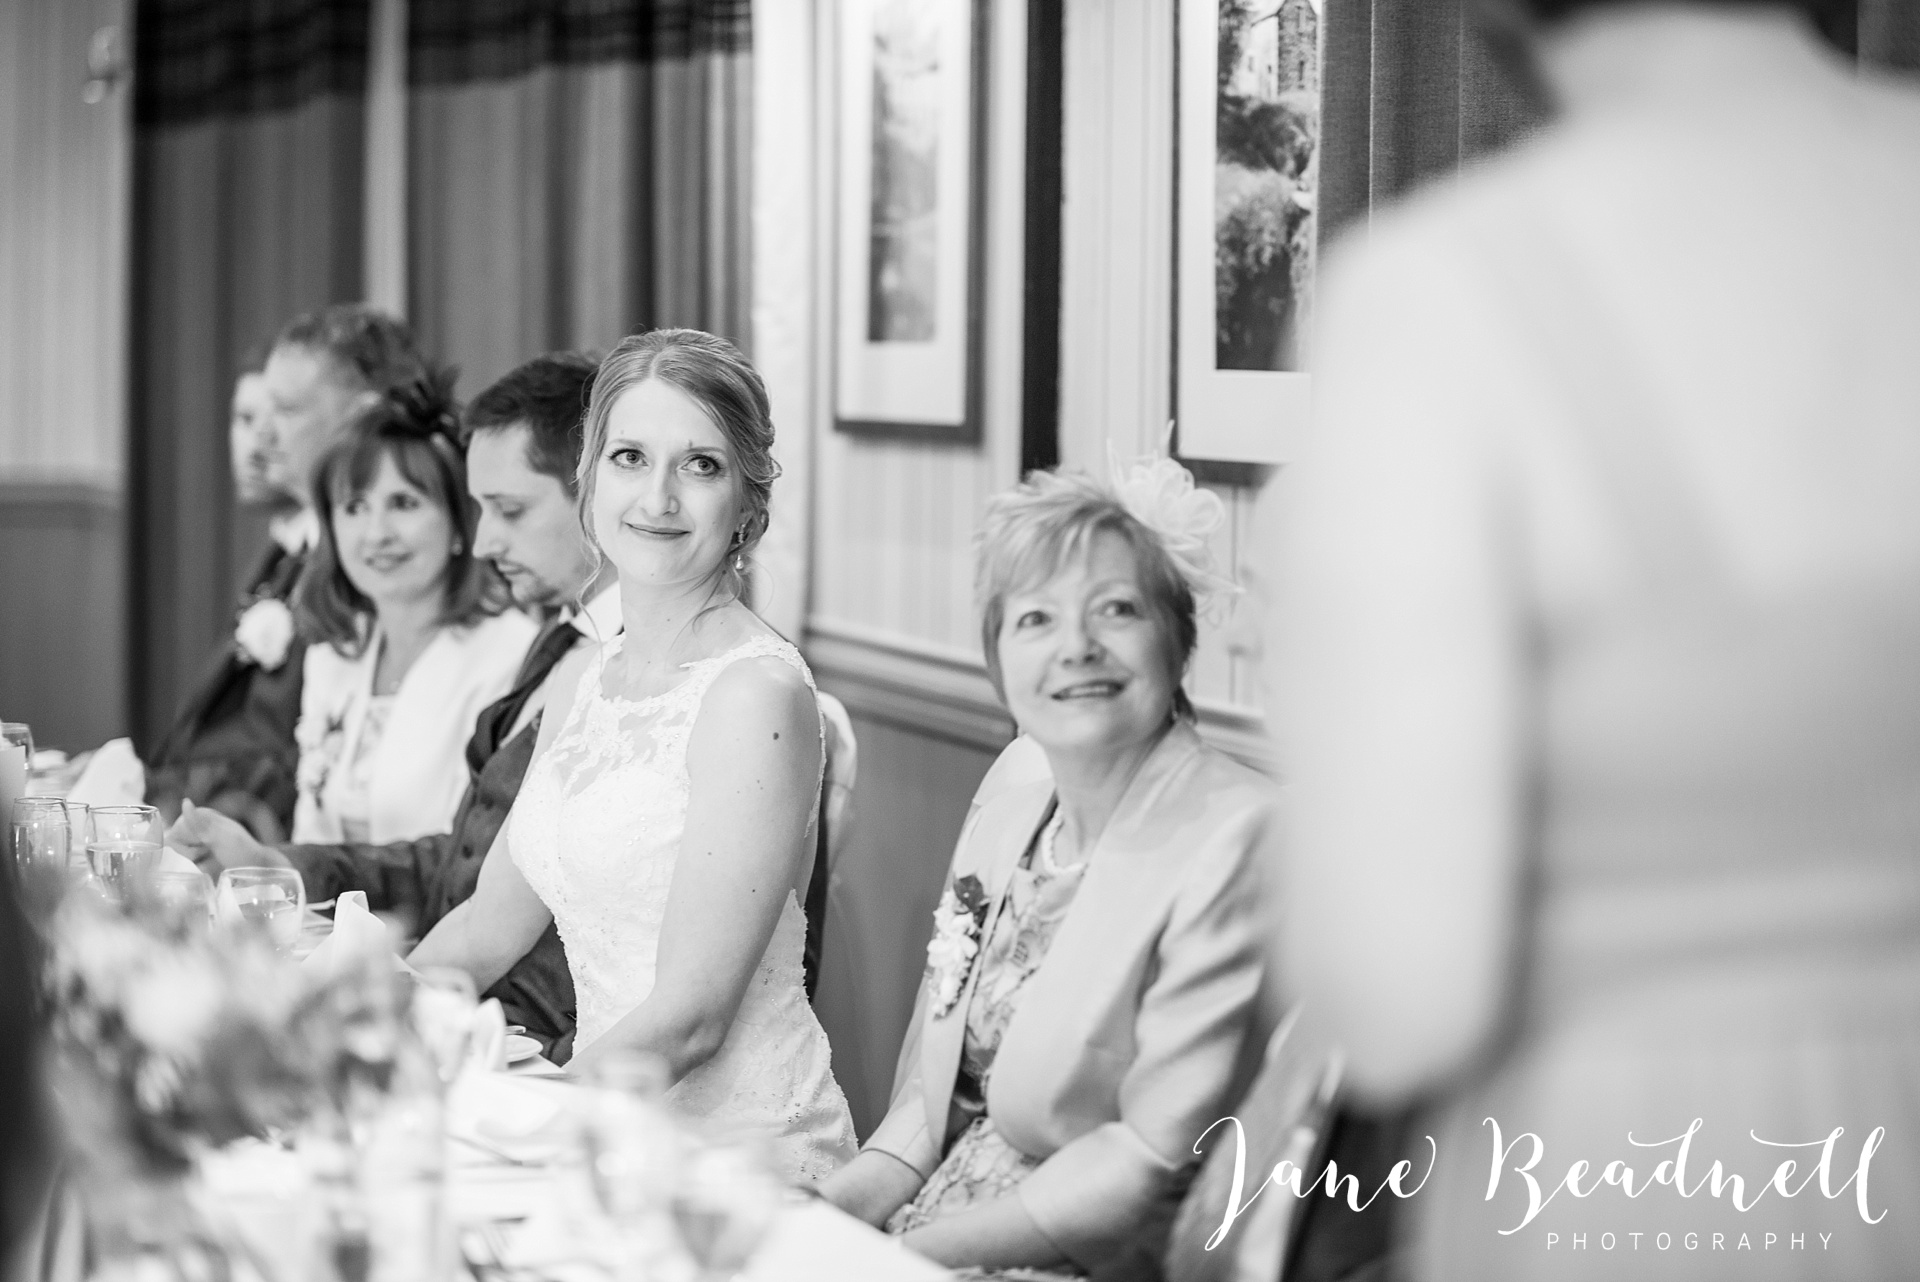 Otley Chevin Lodge wedding photography by Jane Beadnell Photography Leeds_0146